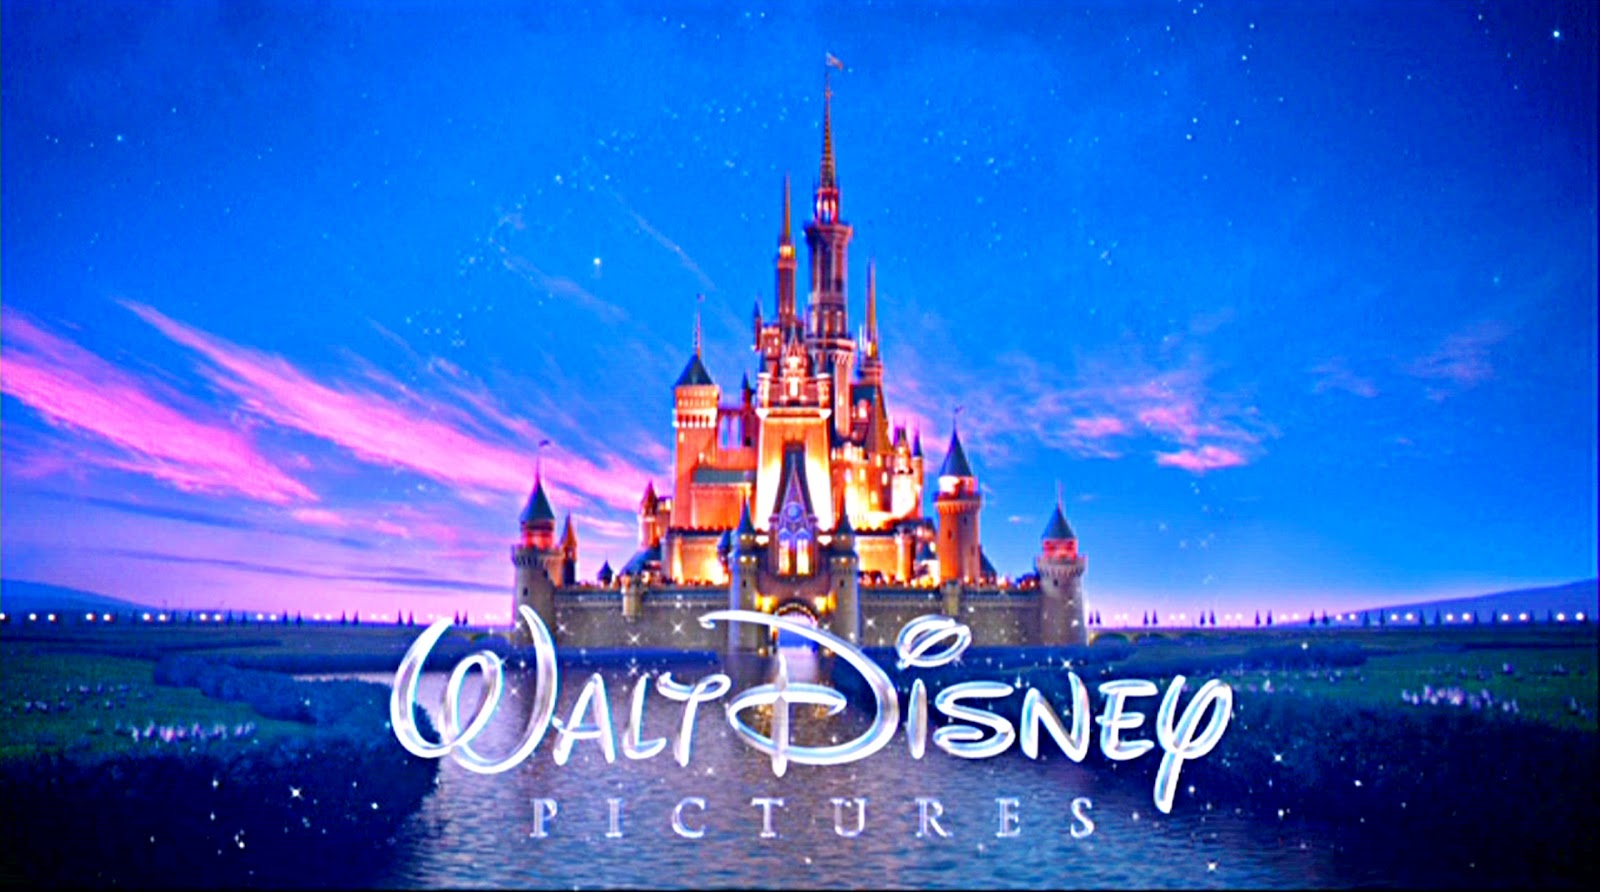 images of walt disney screencaps the logo characters wallpaper